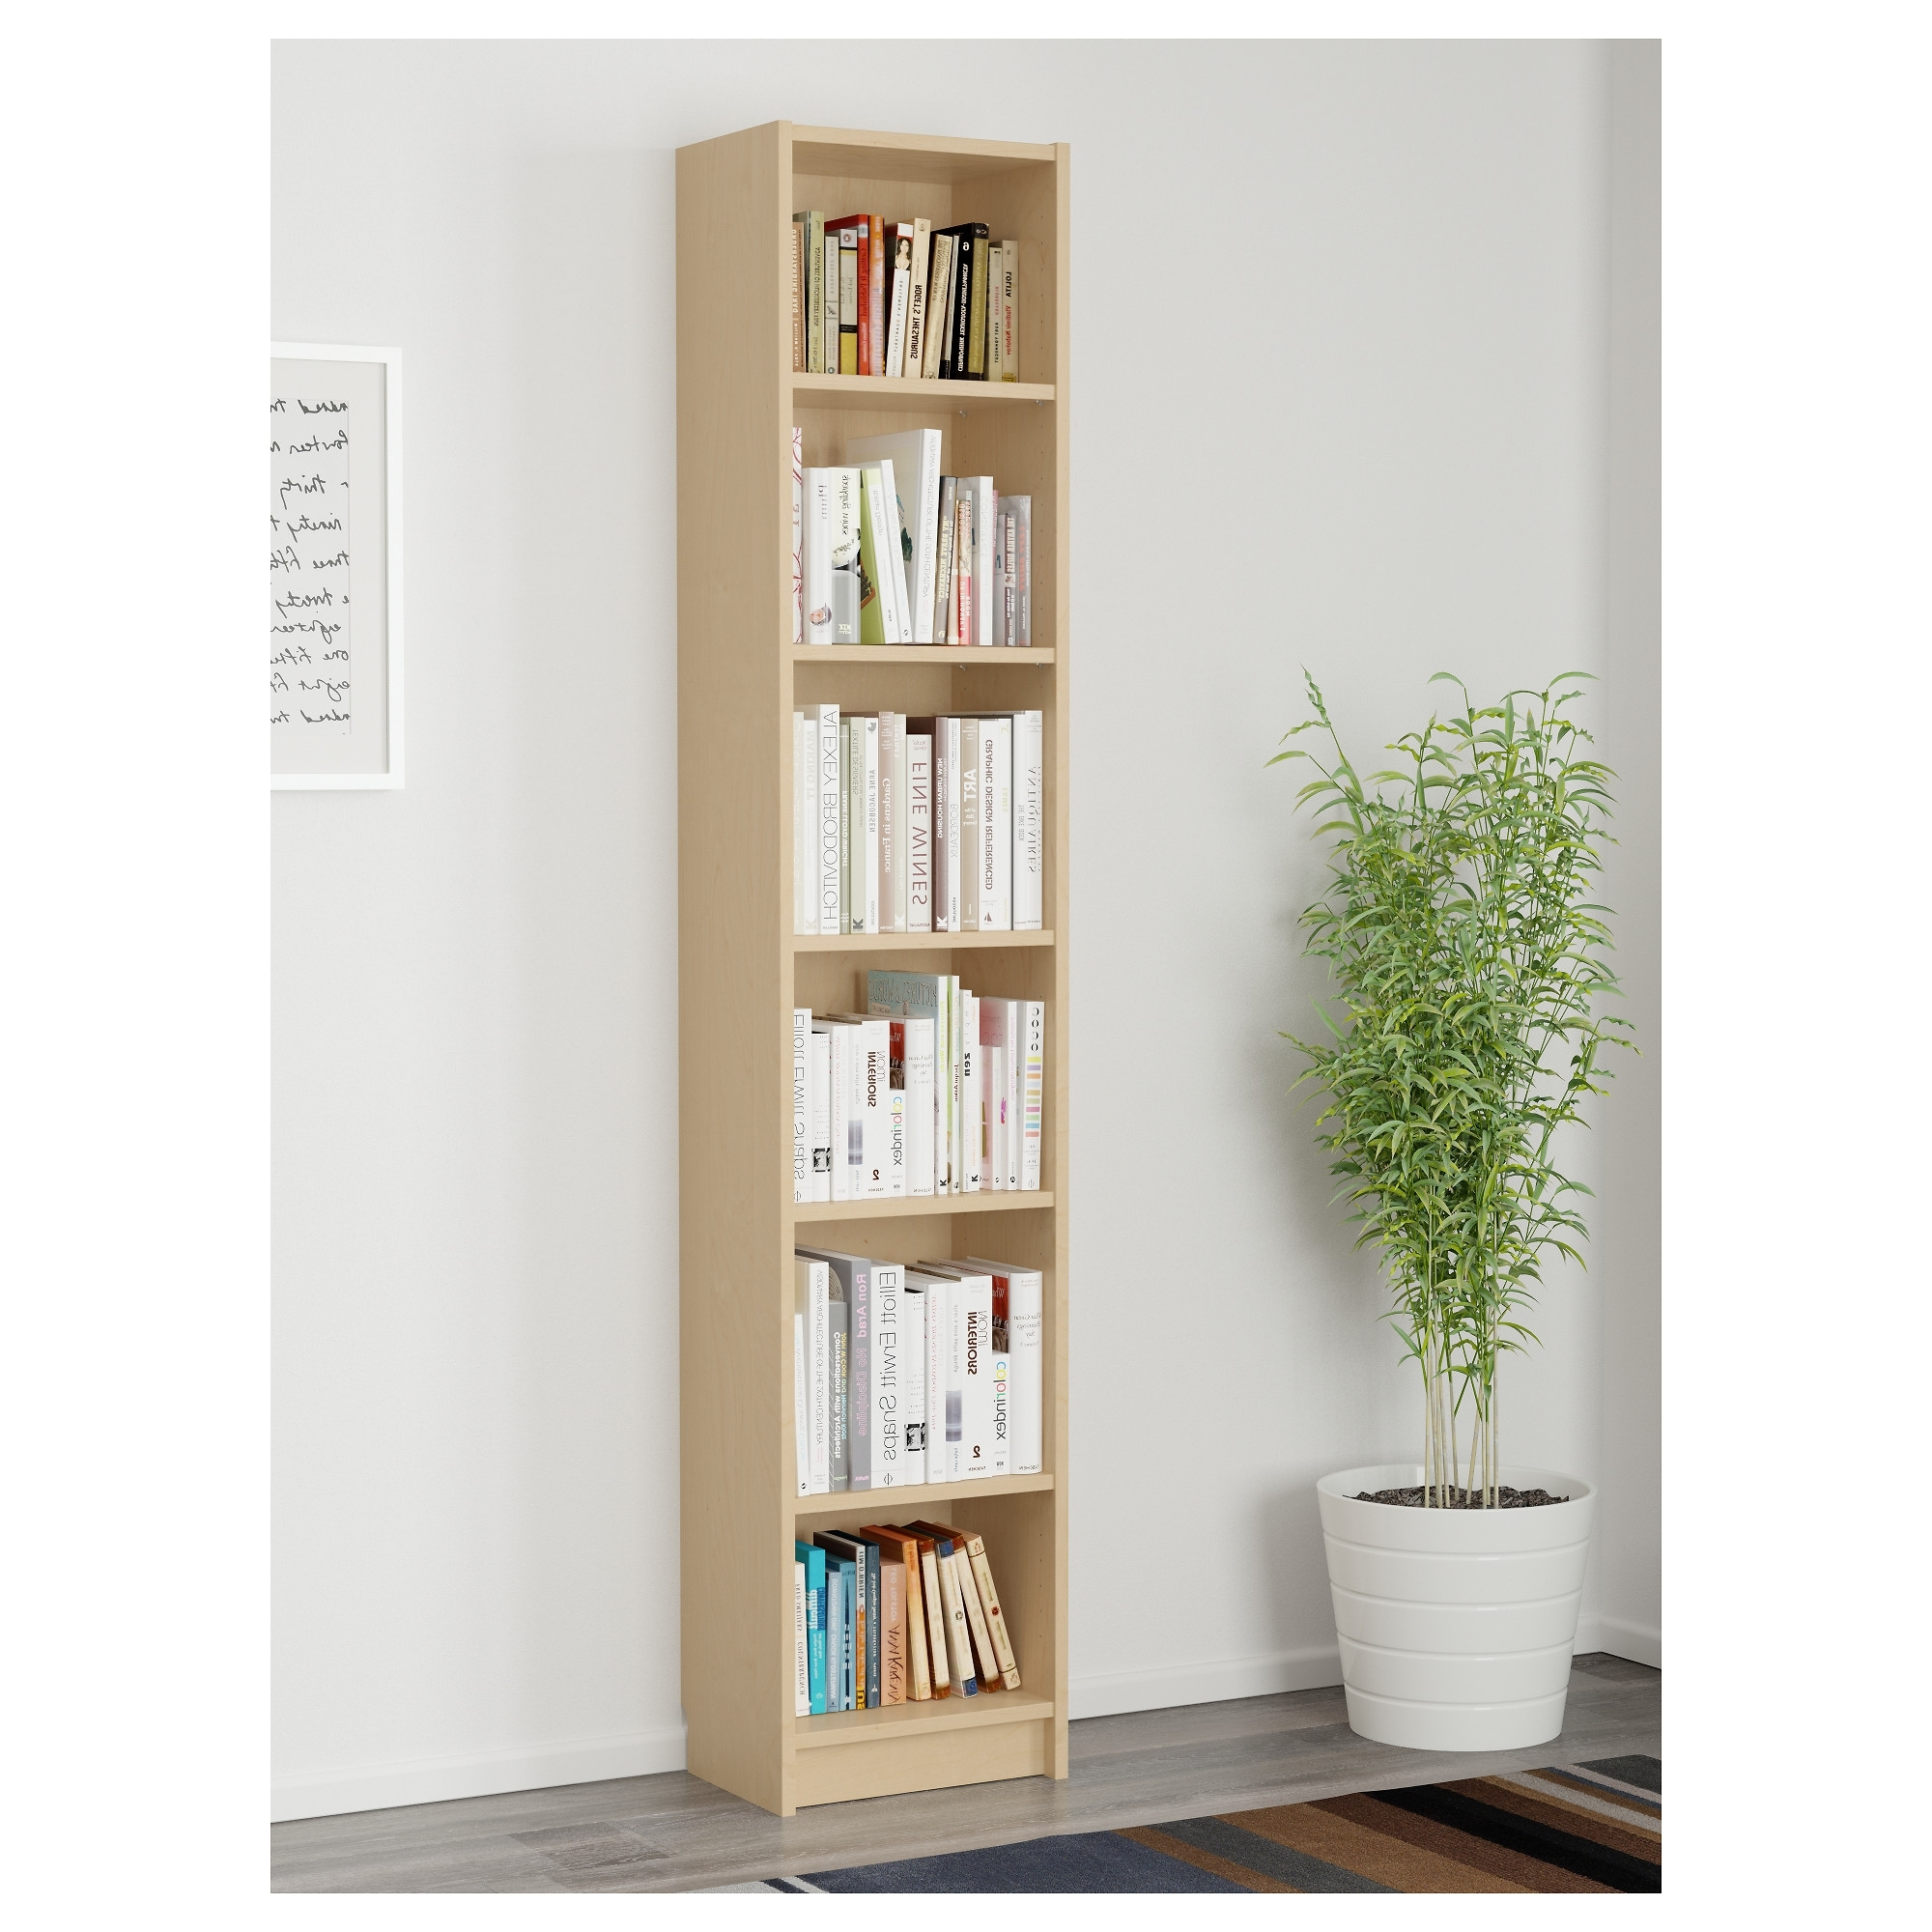 Ikea Billy Bookcases With Recent Billy Bookcase – White – Ikea (View 12 of 15)